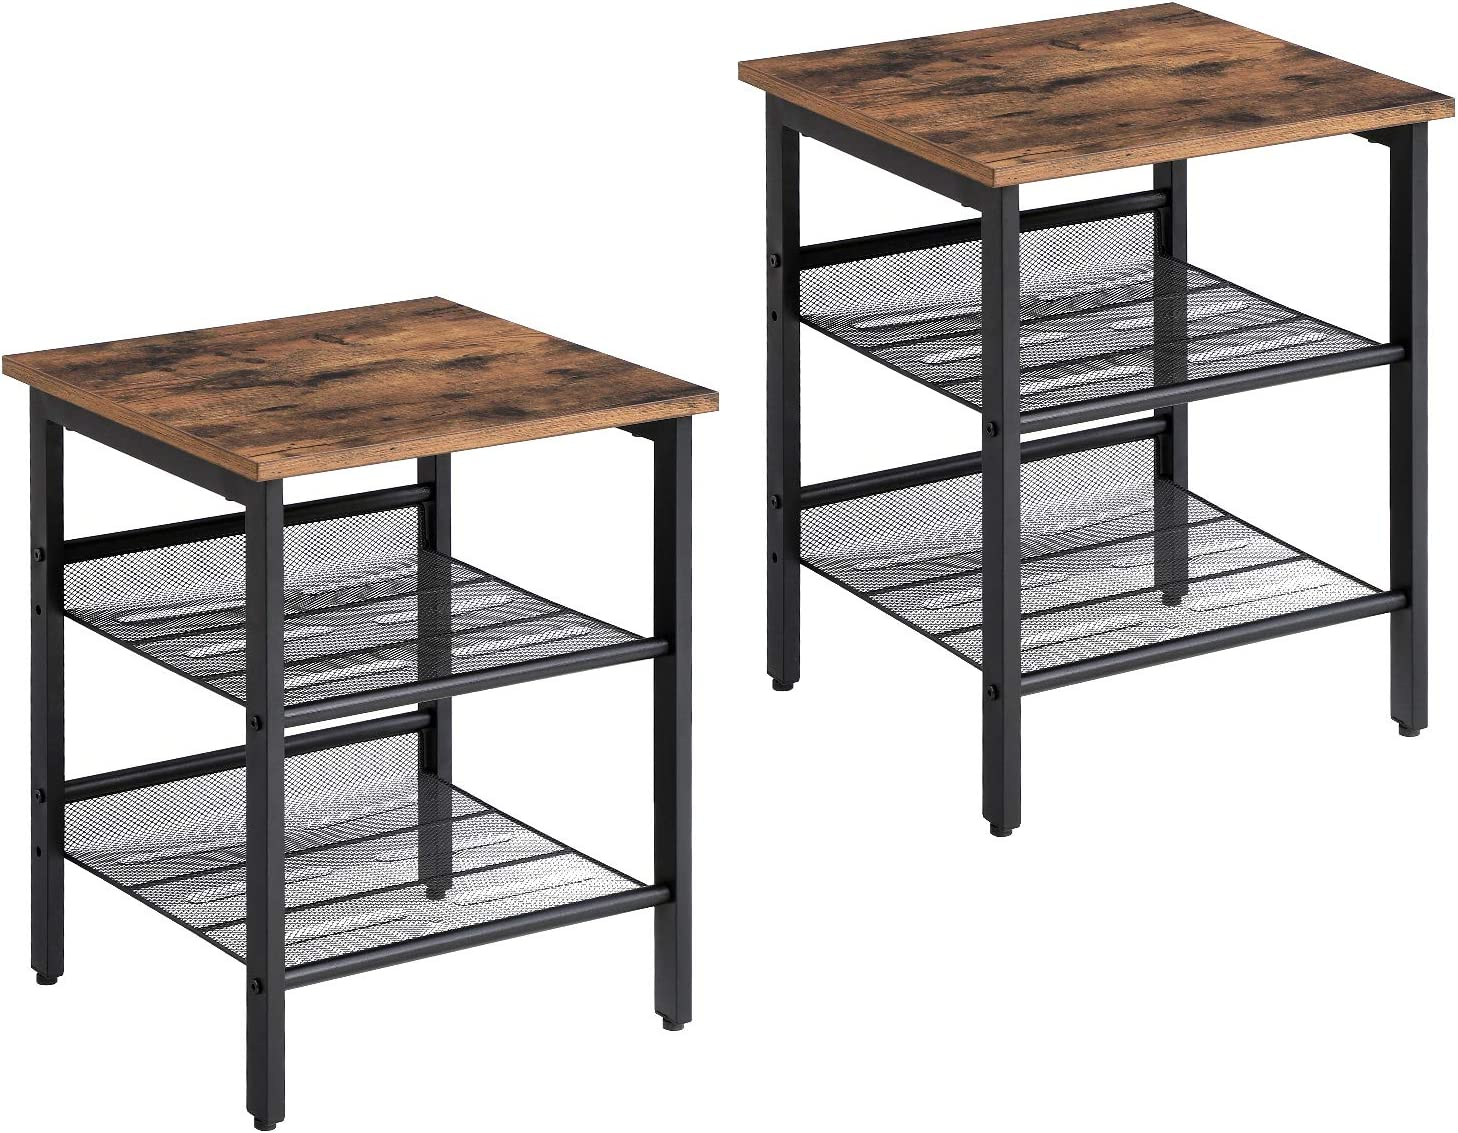 VASAGLE Nightstand, Set of 2 Side Tables, End Tables with Adjustable Mesh Shelves, for Living Room, Bedroom, Industrial, Stable Steel Frame, Easy Assembly, Rustic Brown and Black ULET24X: Kitchen & Dining